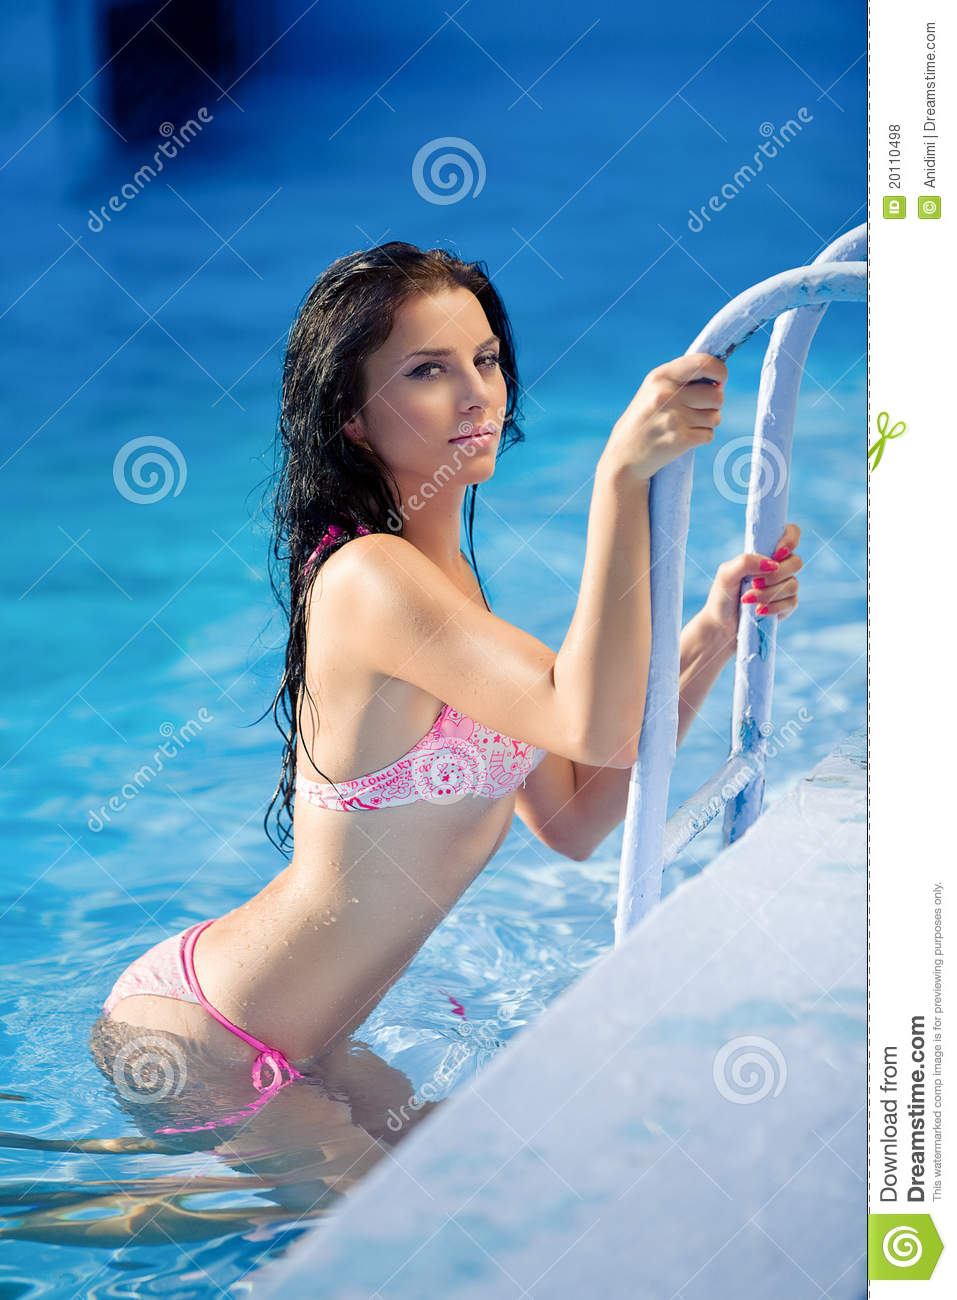 Attractive young woman in pool